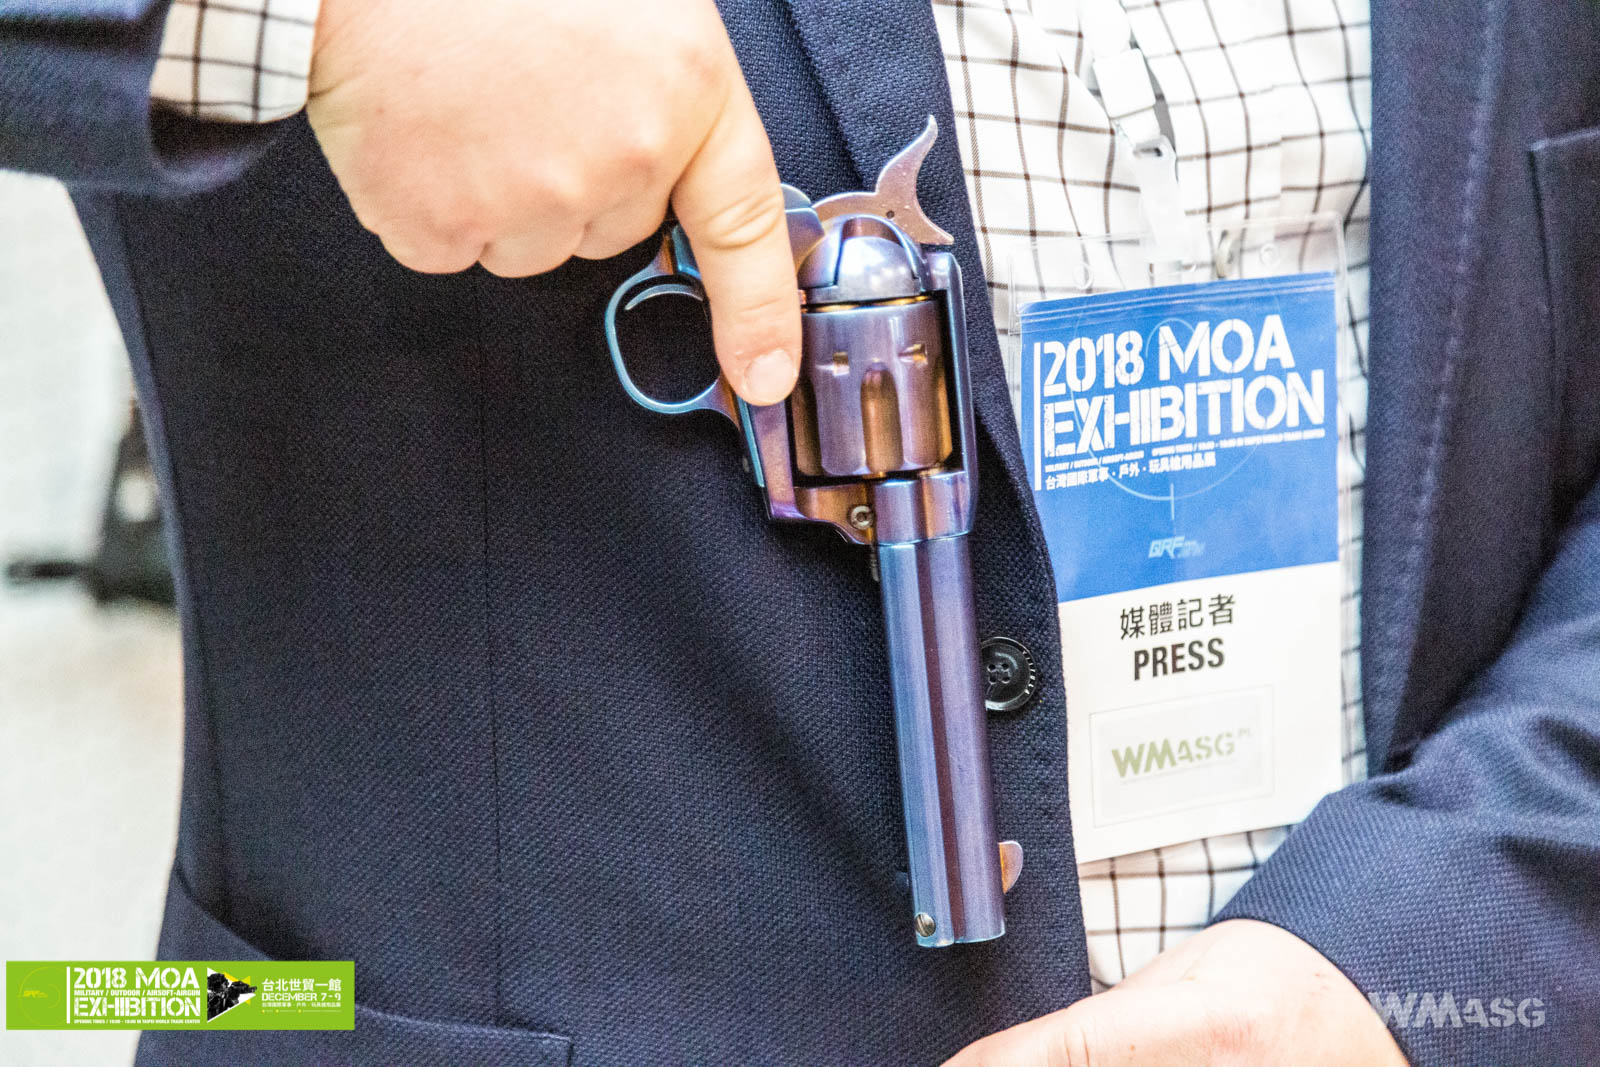 MOA 2018 - King Arms - SAA .45 Peacemaker green gas